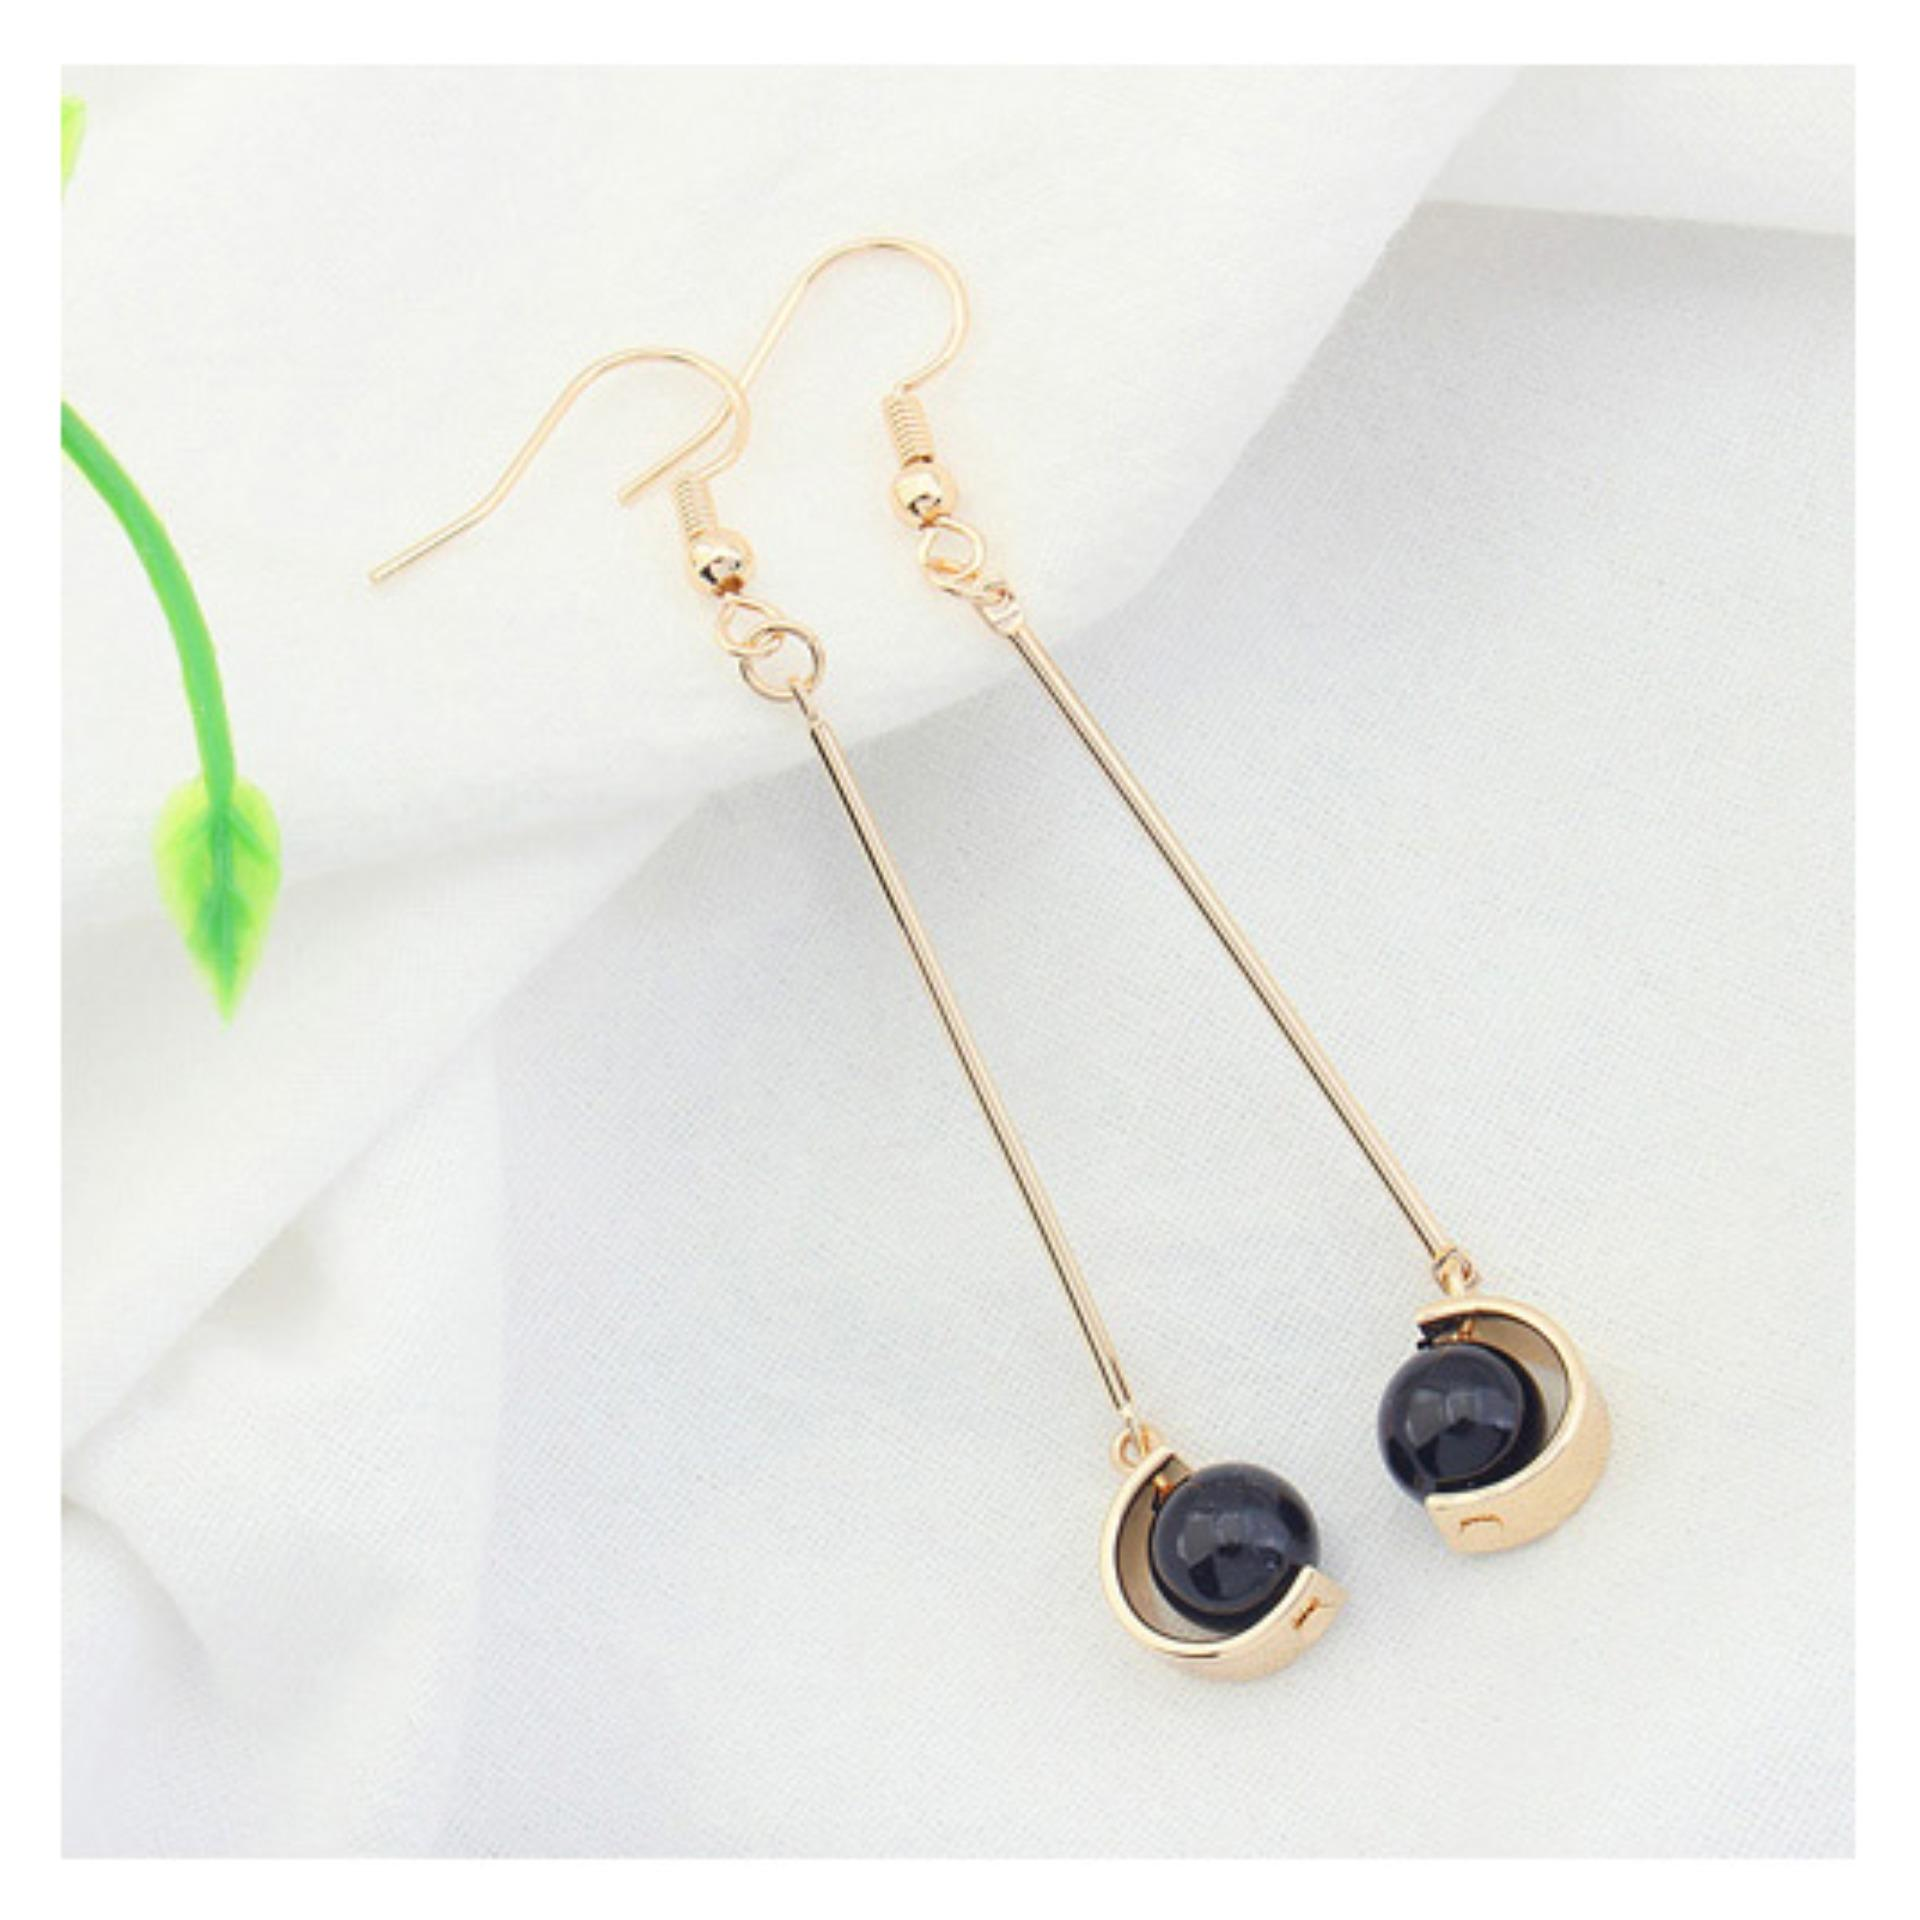 LRC Anting Gantung Fashion Imitation Pearl Decorated Color Matching Design EarringsIDR16200. Rp 16.200